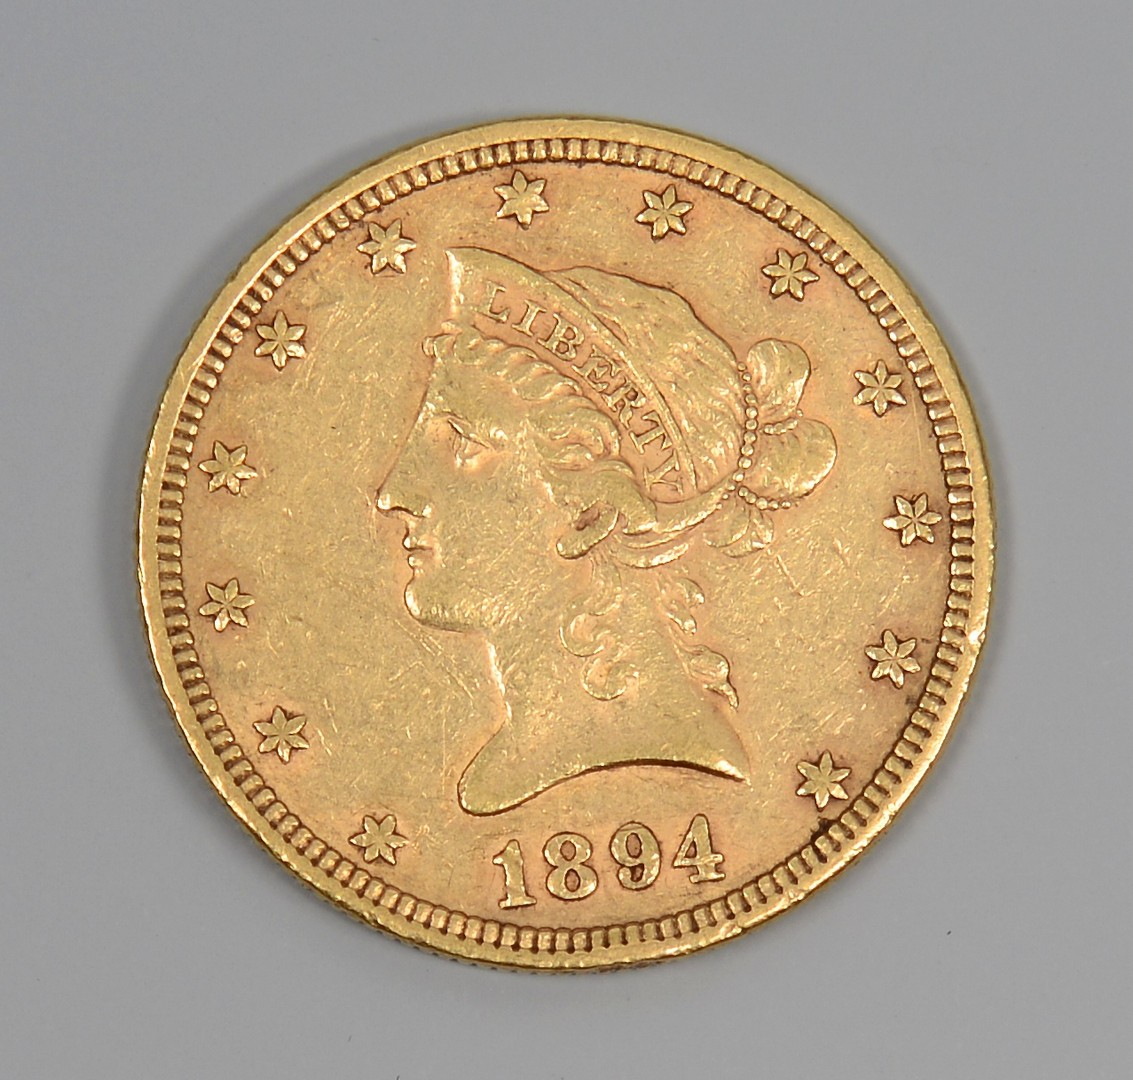 Lot 859: 1894 US $10 Liberty Head Gold Coin